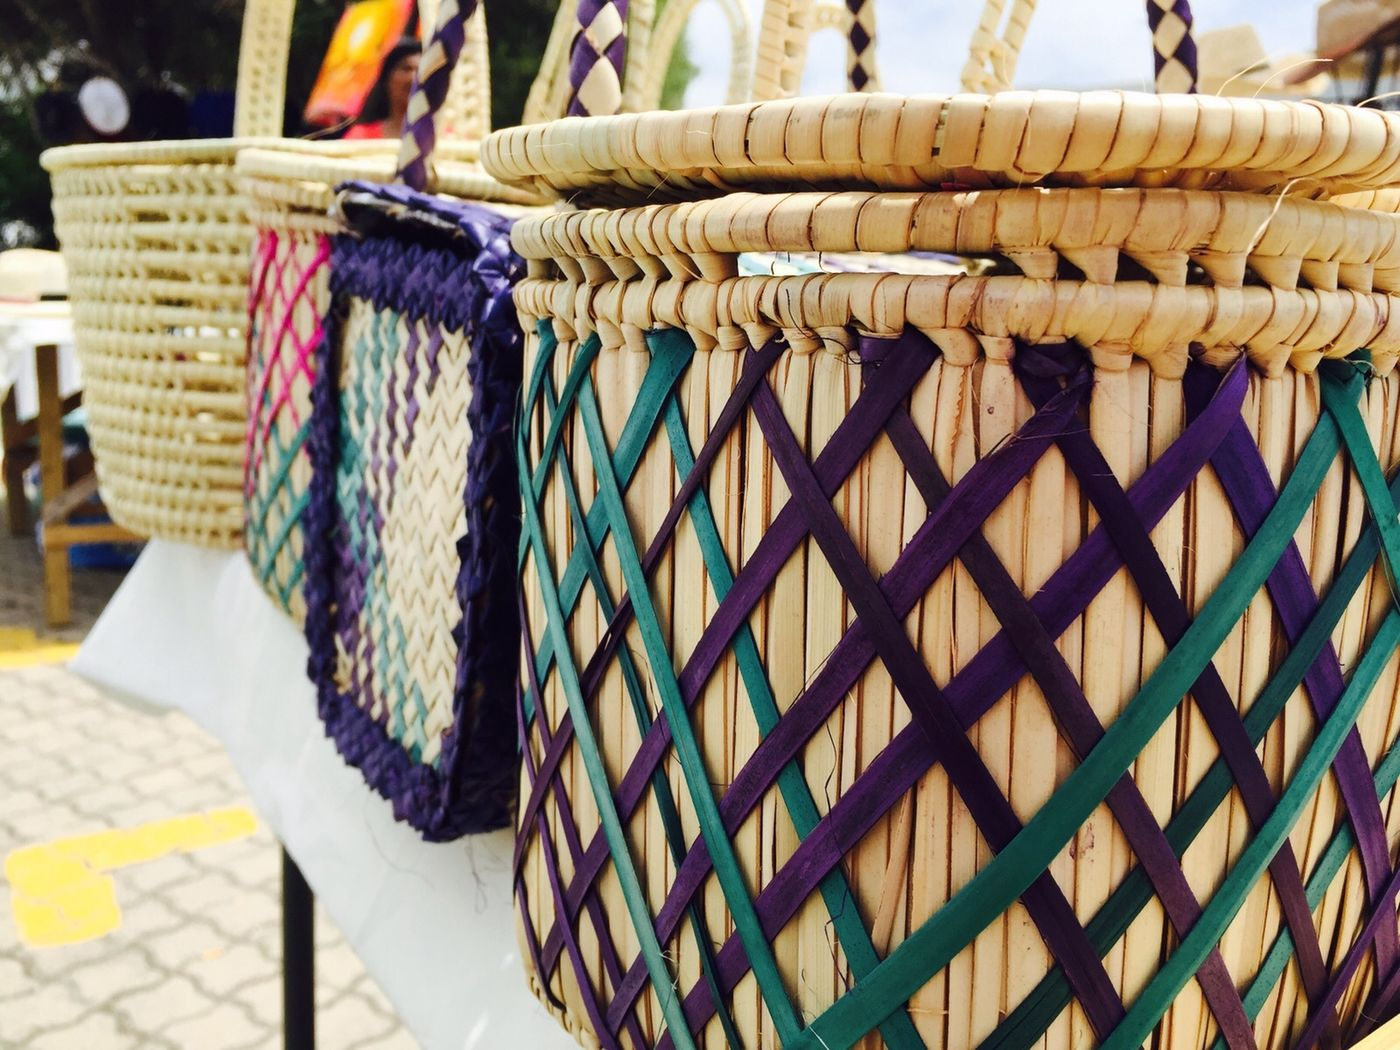 Plett Beachfront Market Baskets